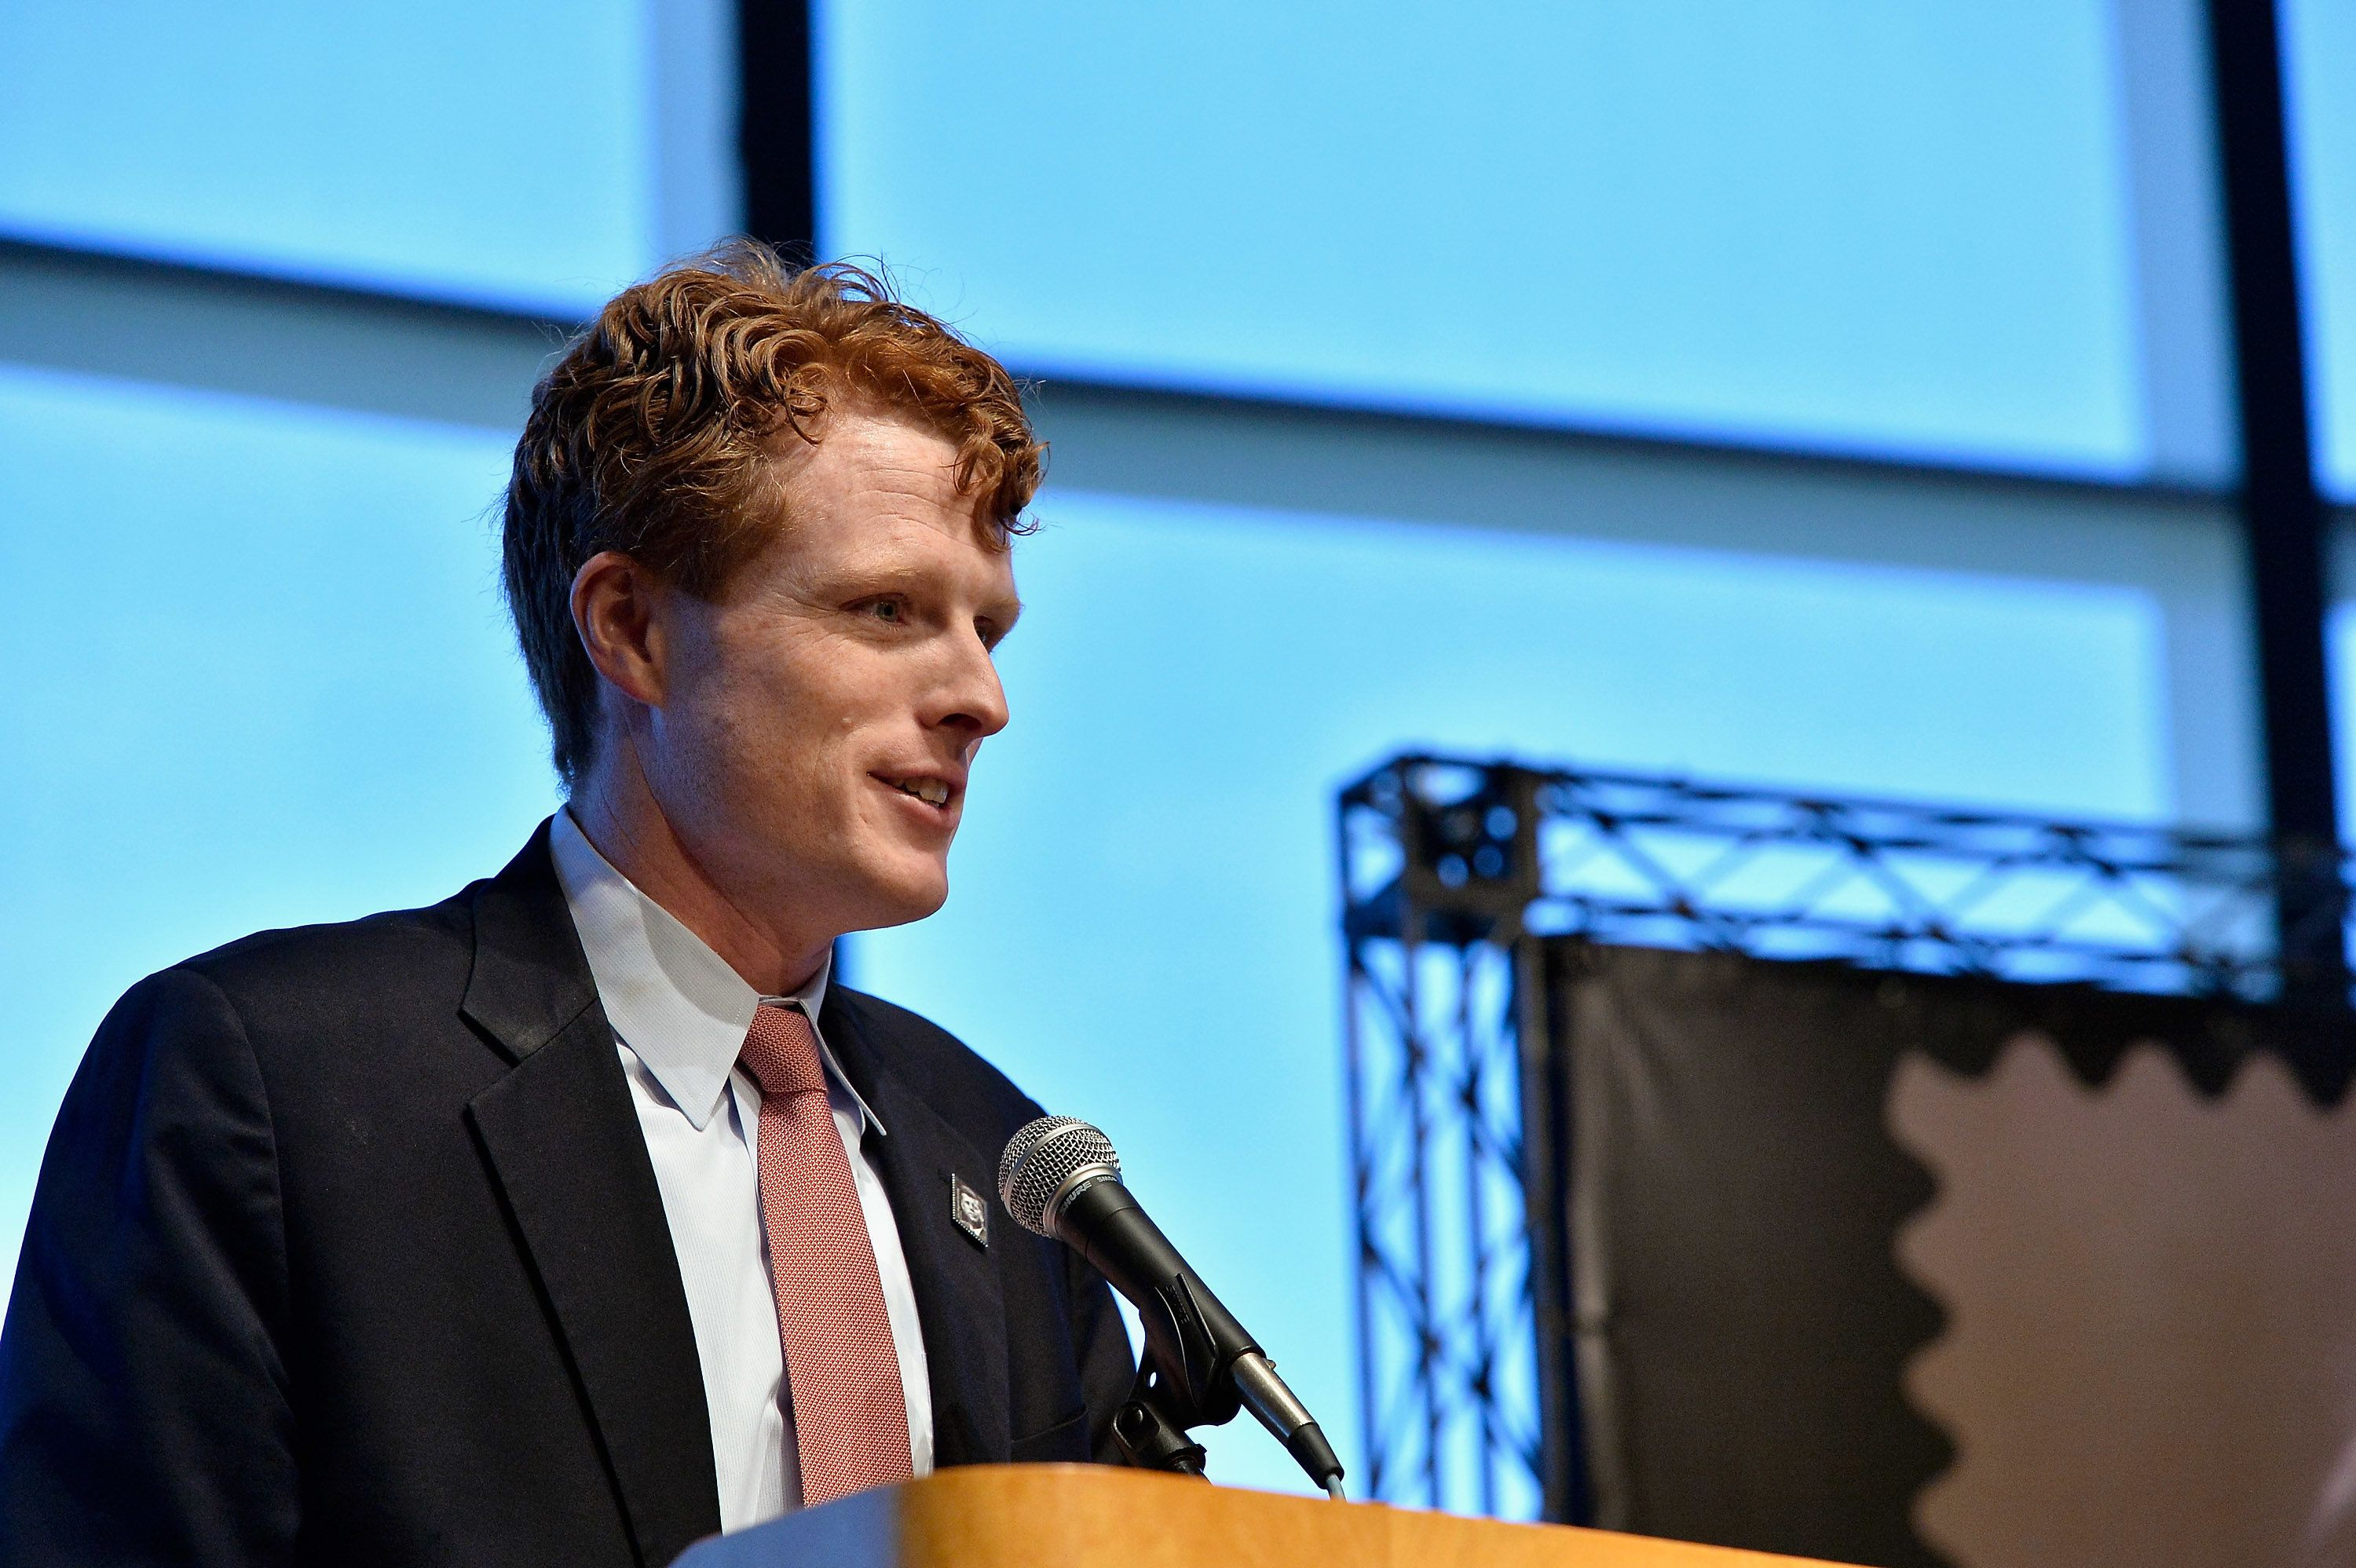 BOSTON, MA - FEBRUARY 20:  Massachusetts Congressman Joseph P. Kennedy, III attends the U.S. Postal Service First Day of Issue Dedication Ceremony of the centennial of President John F. Kennedy's birth dedication of a Forever stamp in his honor at the John F. Kennedy Presidential Library and Museum on February 20, 2017 in Boston, Massachusetts.  The image used on the stsamp was shot in 1960 by photographer Ted Speigel.  (Photo by Paul Marotta/Getty Images)